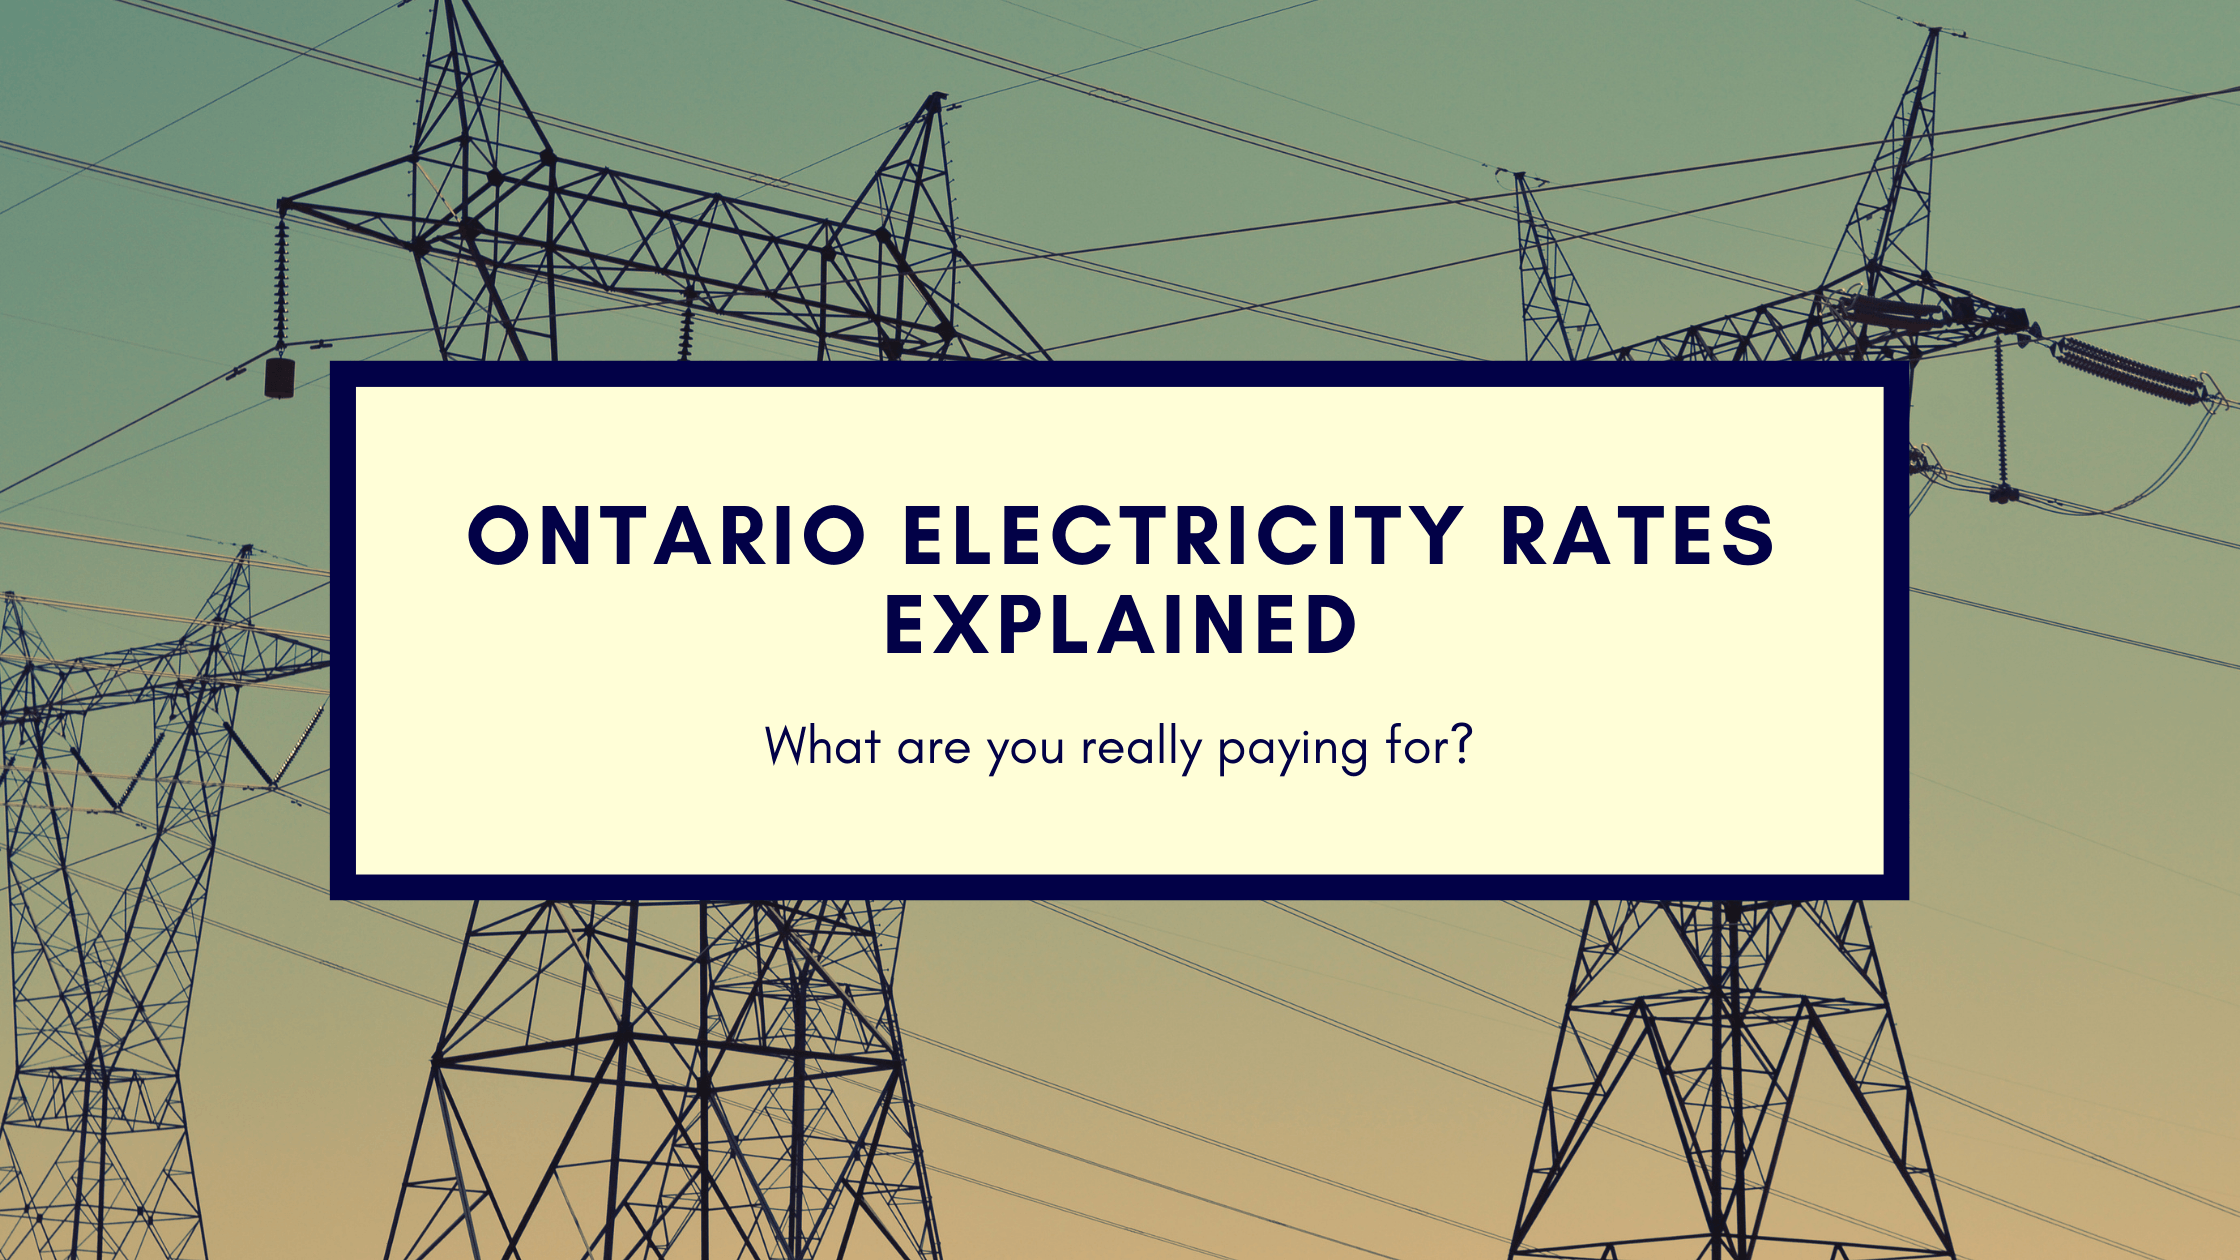 Ontario Electricity Rates Explained